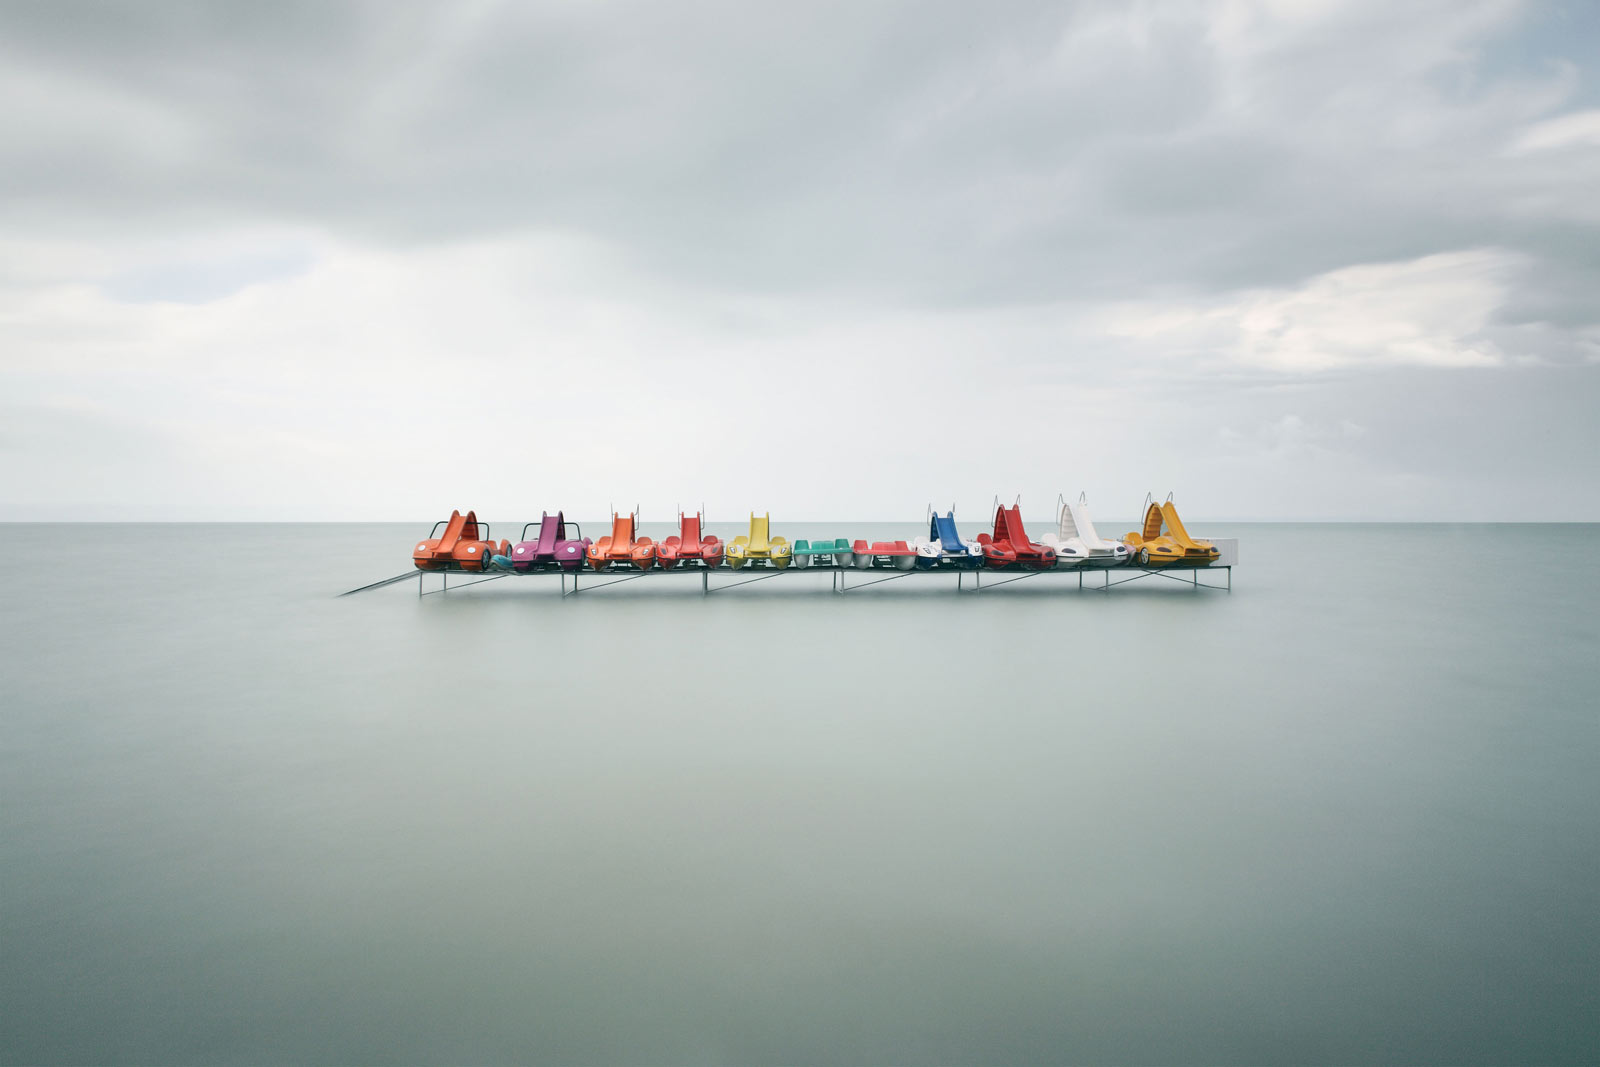 Pedalboats #3 von Akos Major